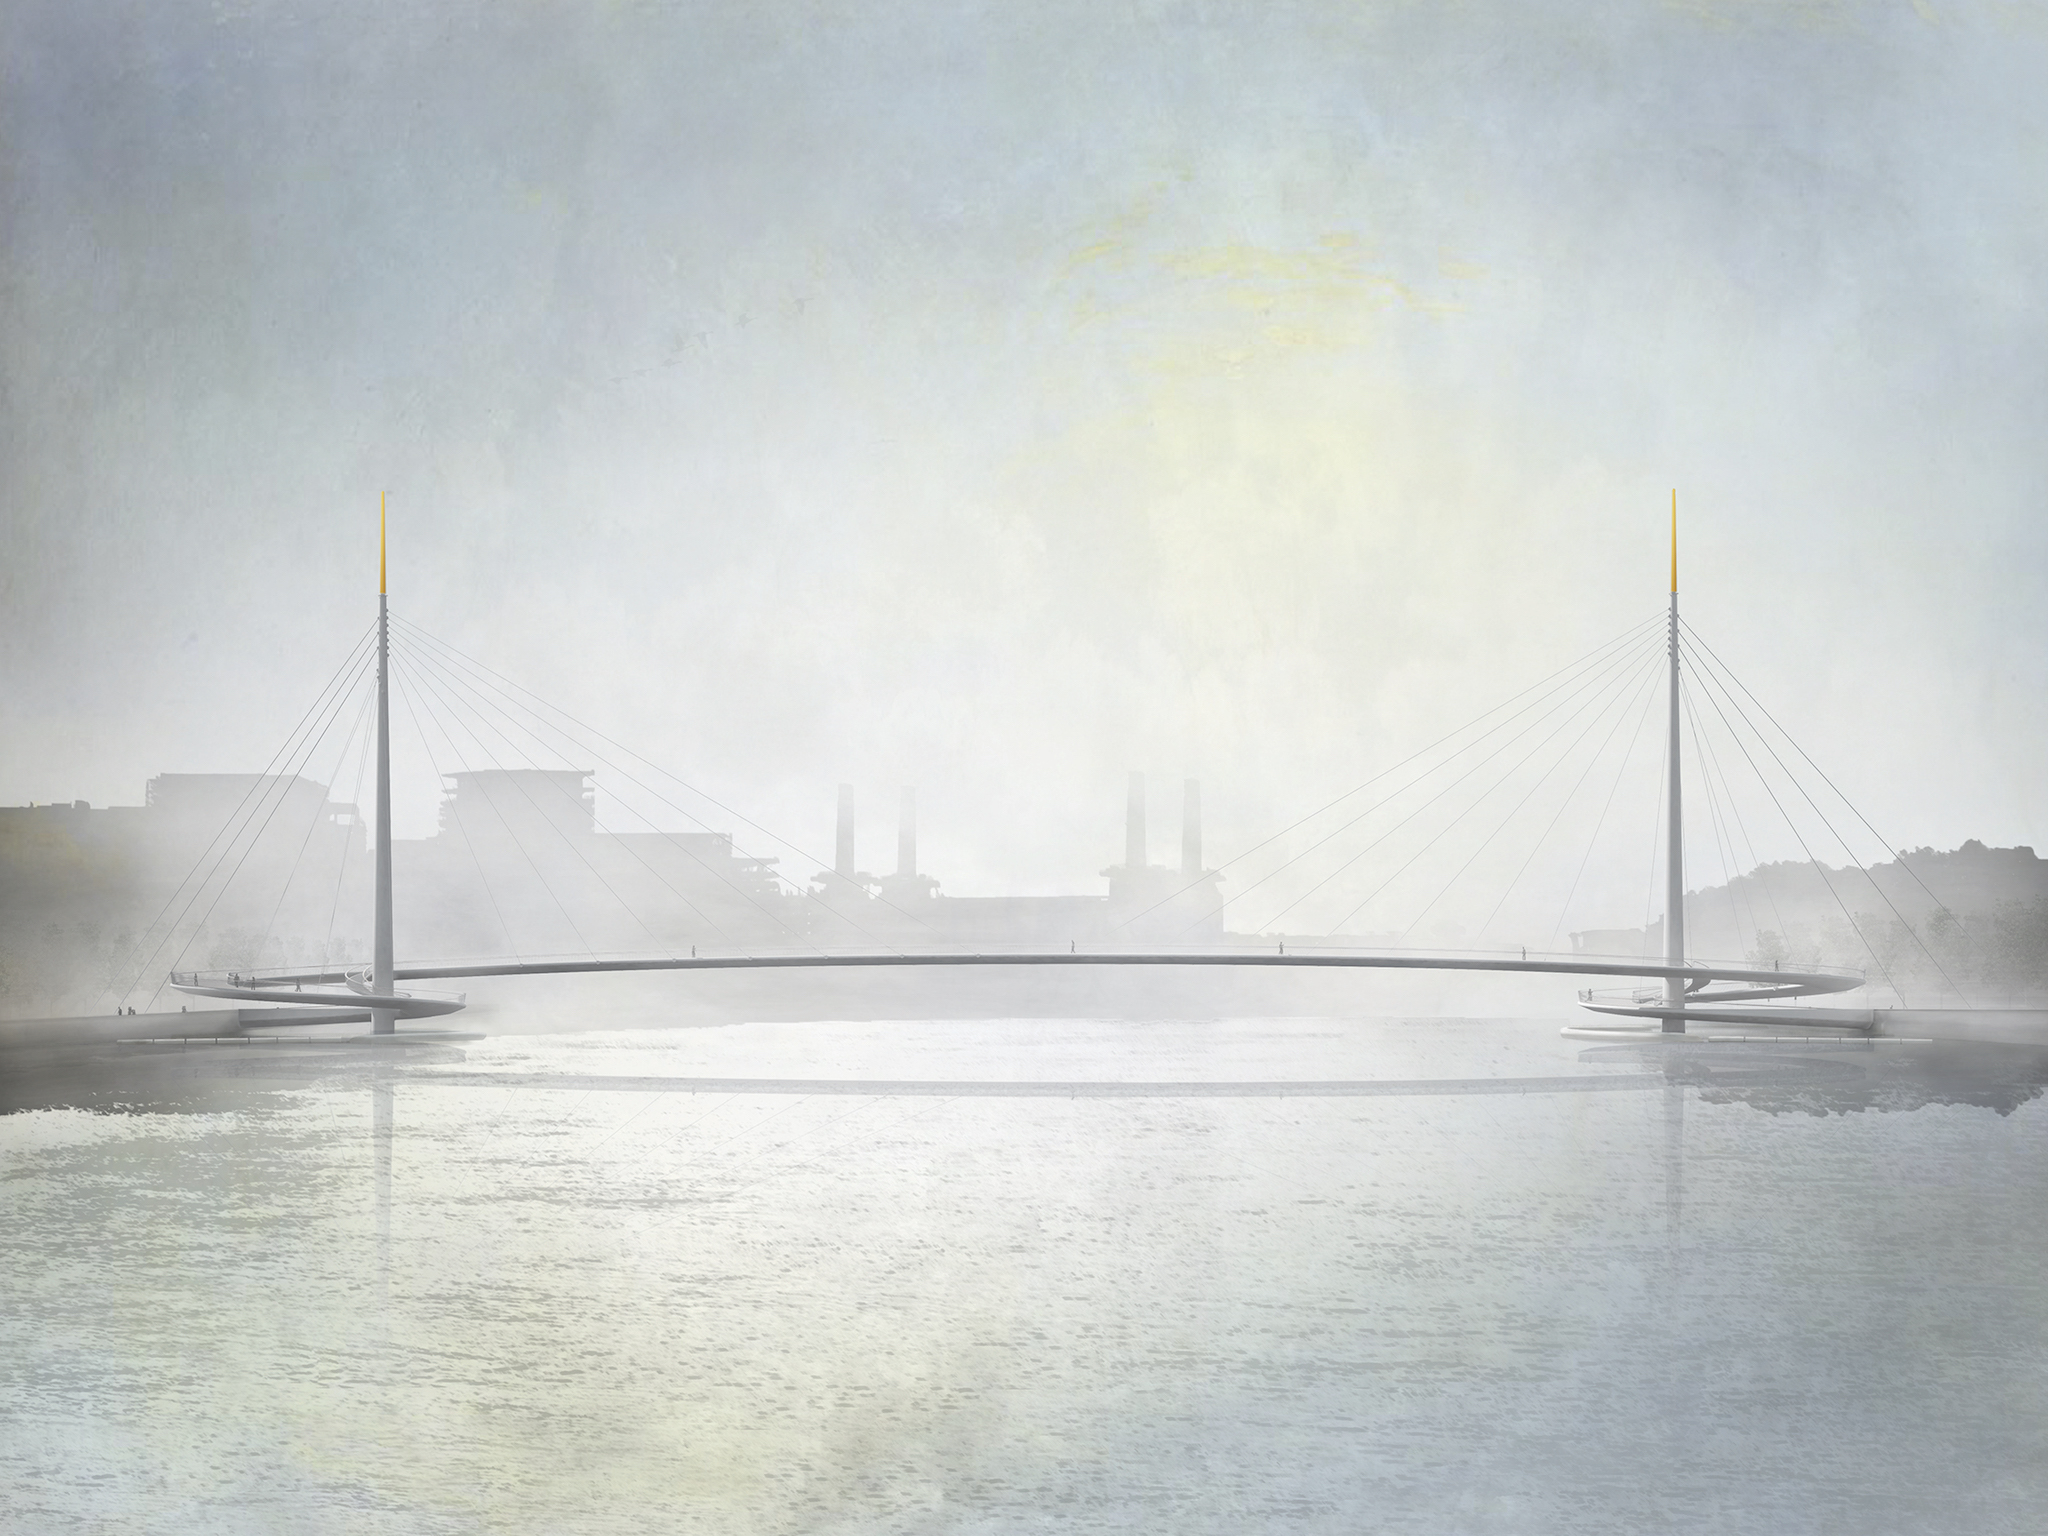 Nine Elms Pimlico Bridge